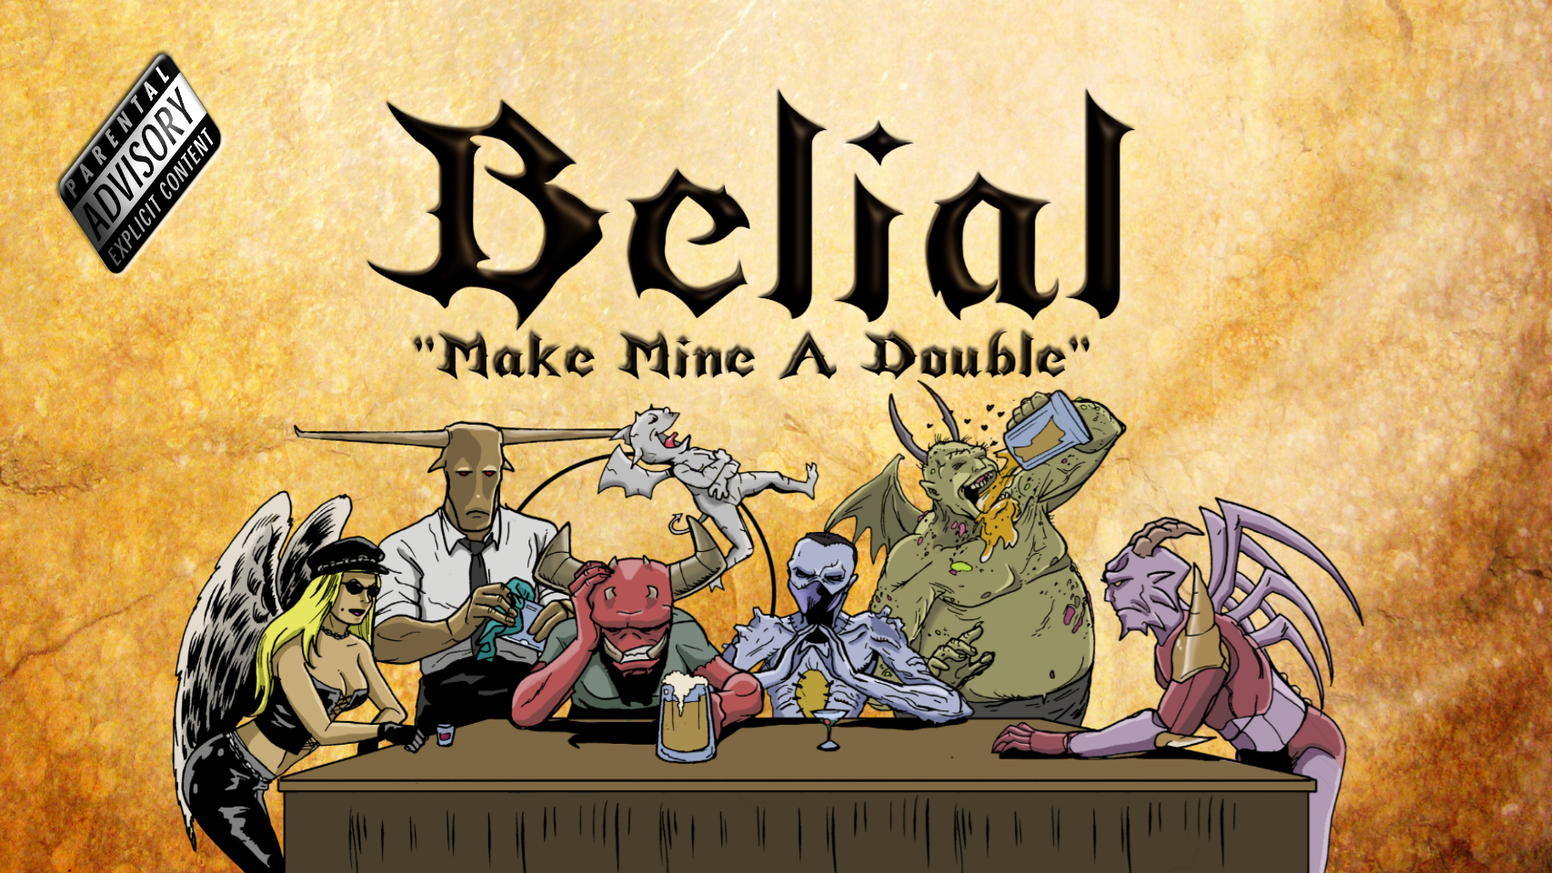 The second issue of the hilarious can't-miss mini-series, Belial, an action adventure comedy of Hellish proportions.